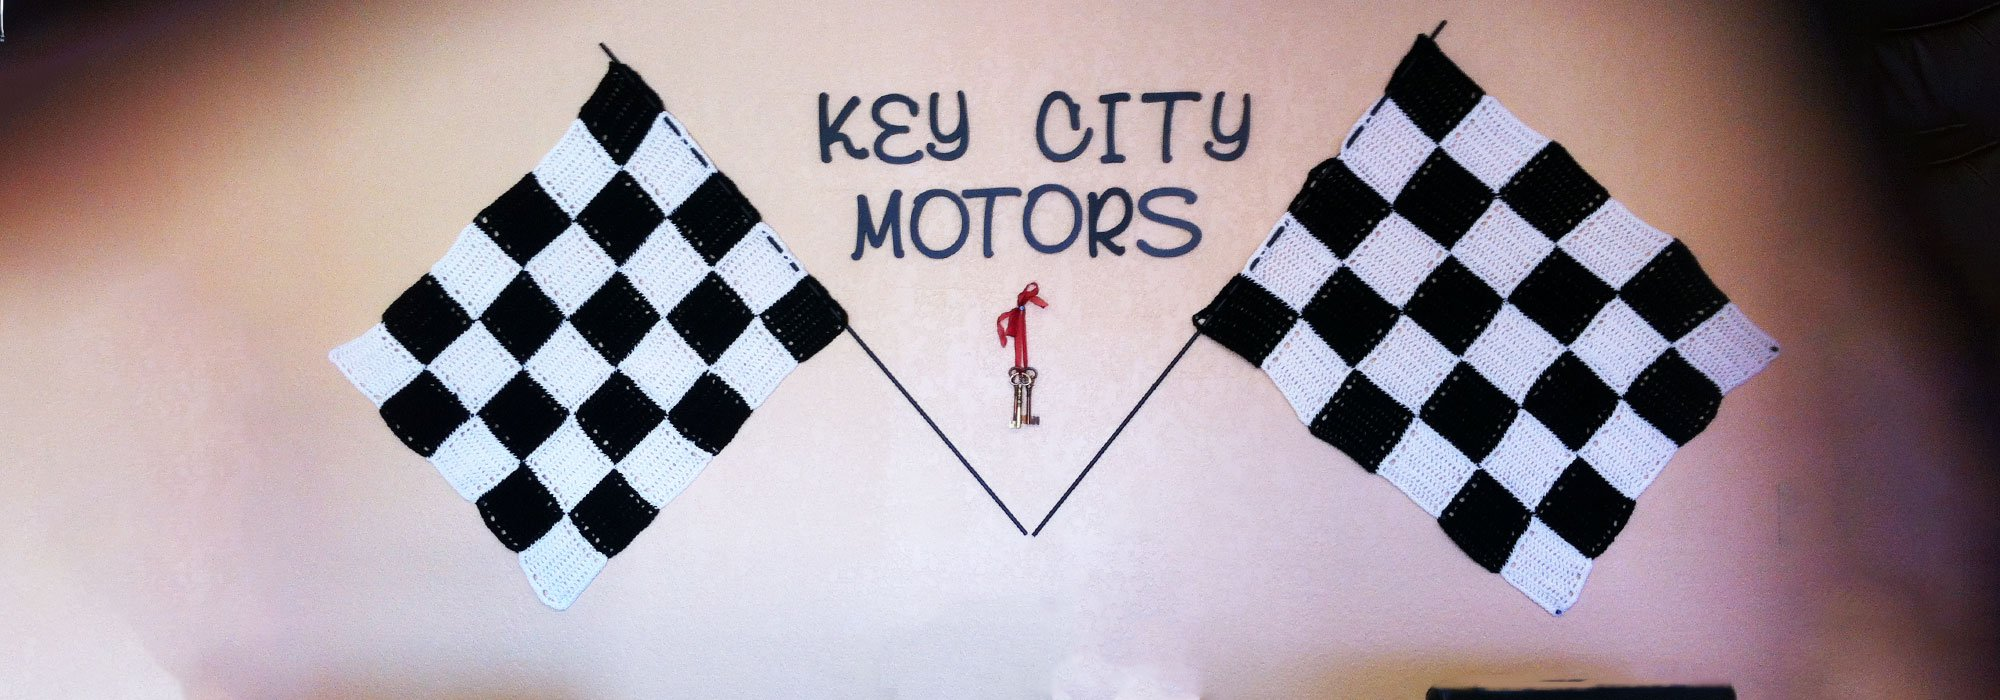 Key City Motors Car Dealer In Abilene Tx